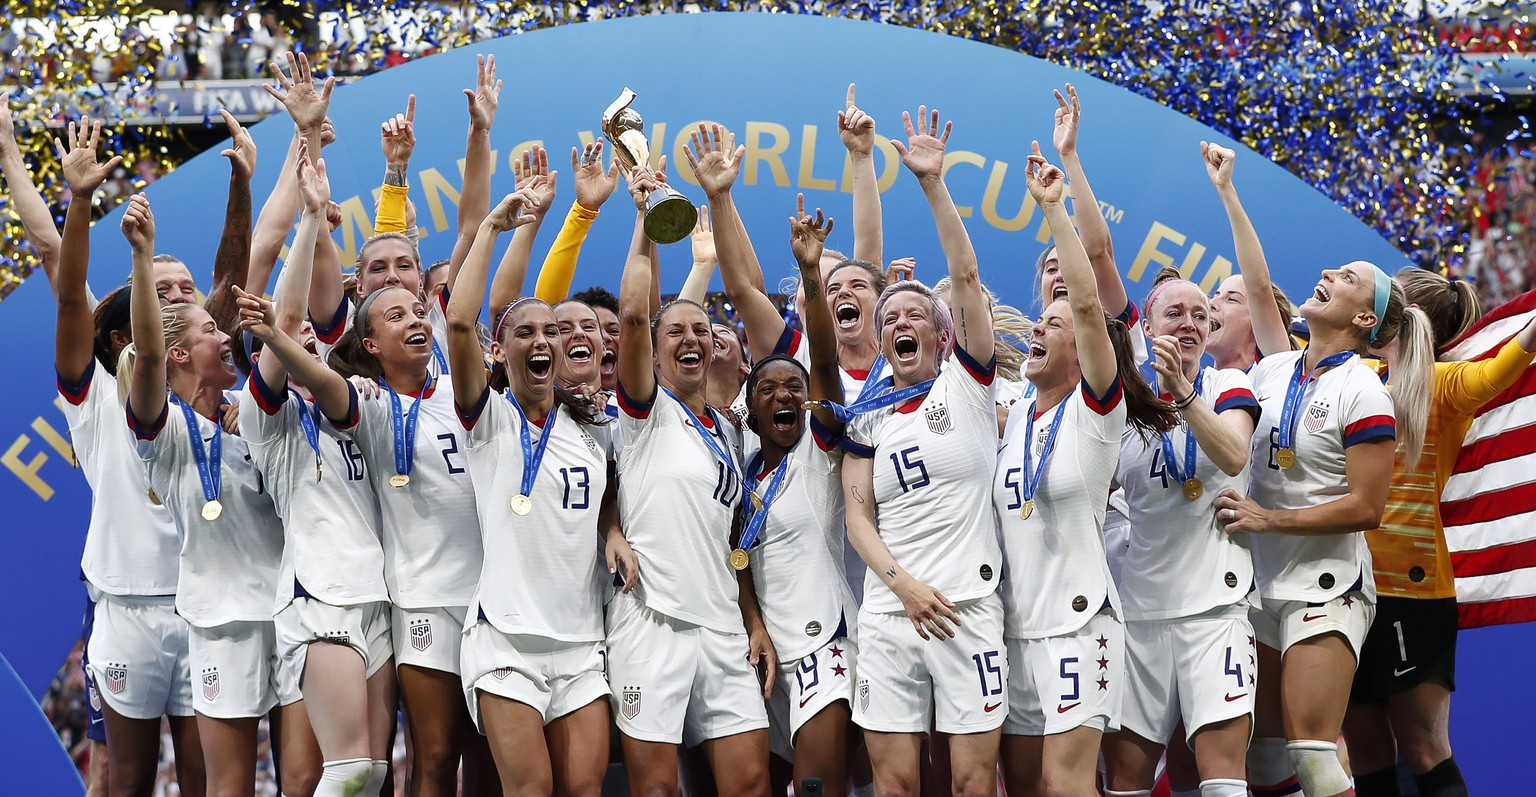 epa07701905 The USA team celebrate after winning the FIFA Women's World Cup 2019 final soccer match between USA and Netherlands in Lyon, France, 07 July 2019.  EPA/IAN LANGSDON